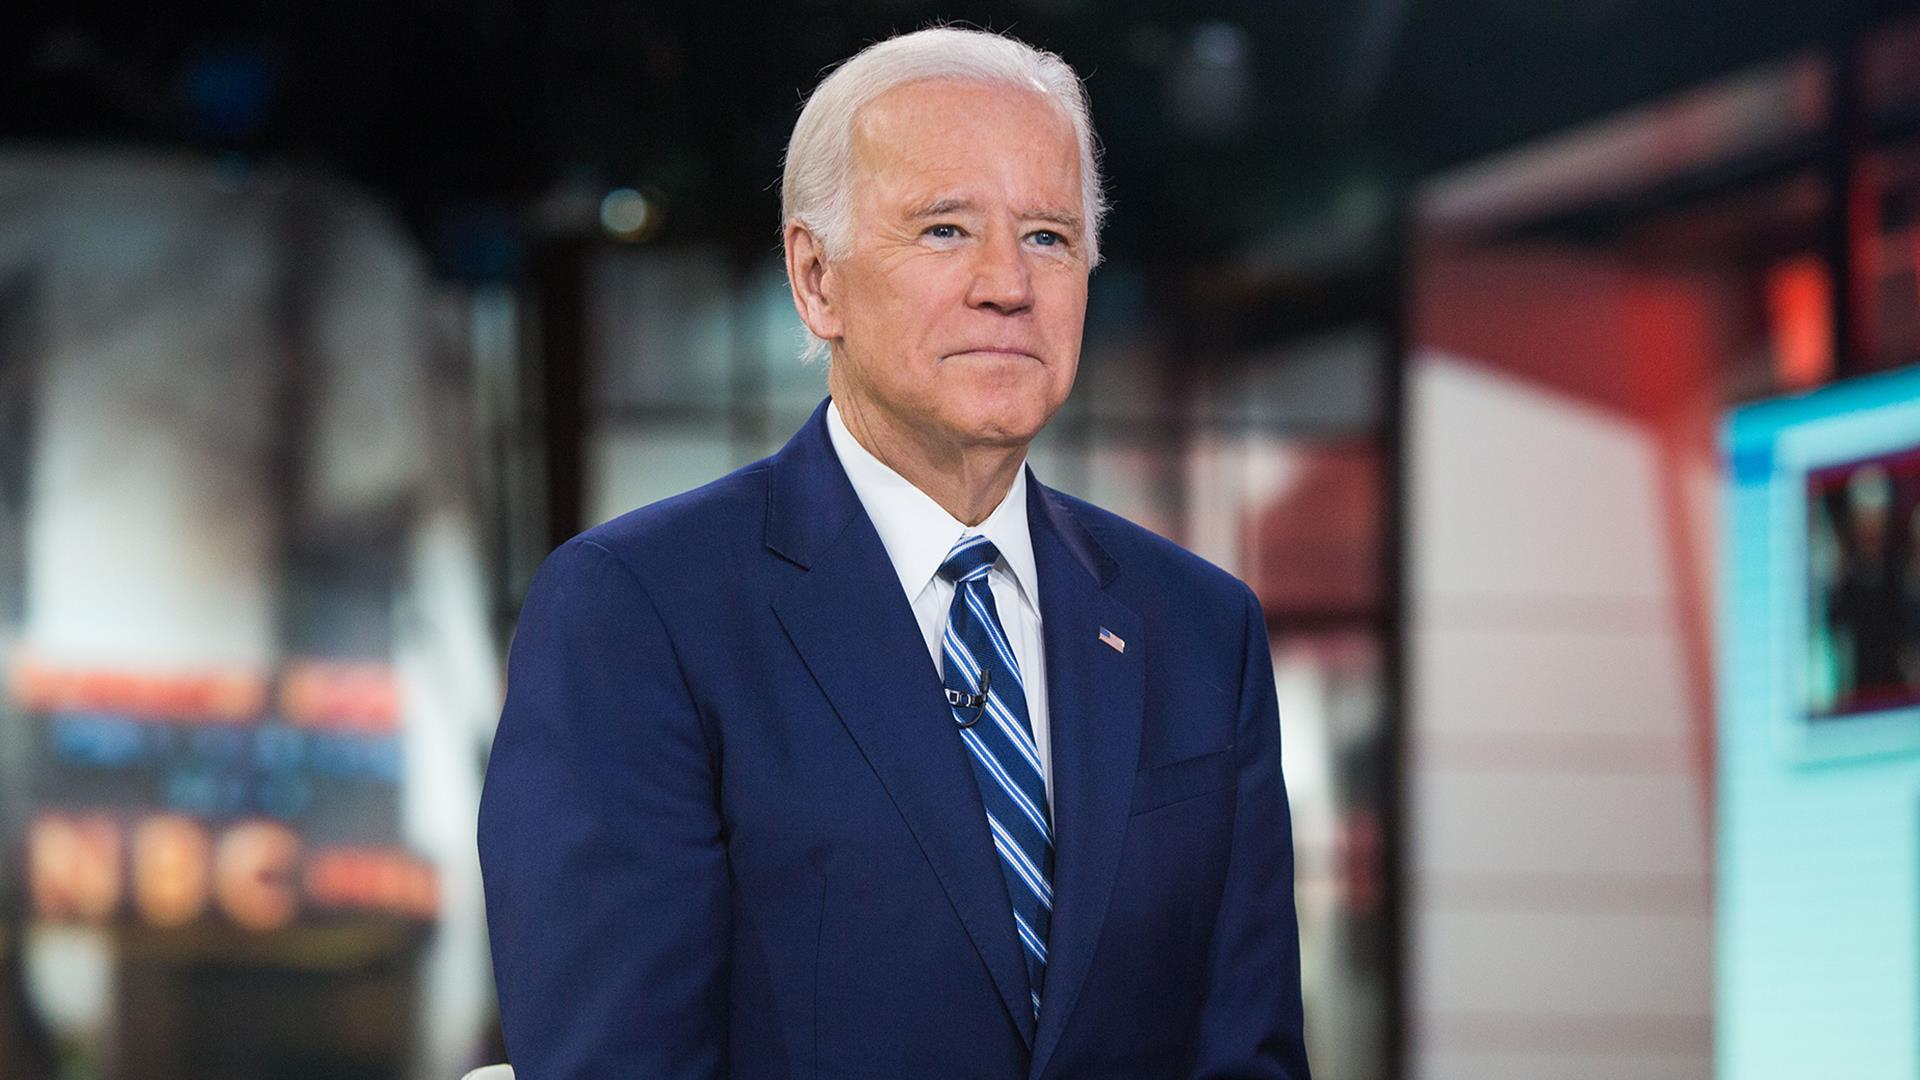 Barack Obamas Birthday Tweet To Joe Biden Is So Bromance Y